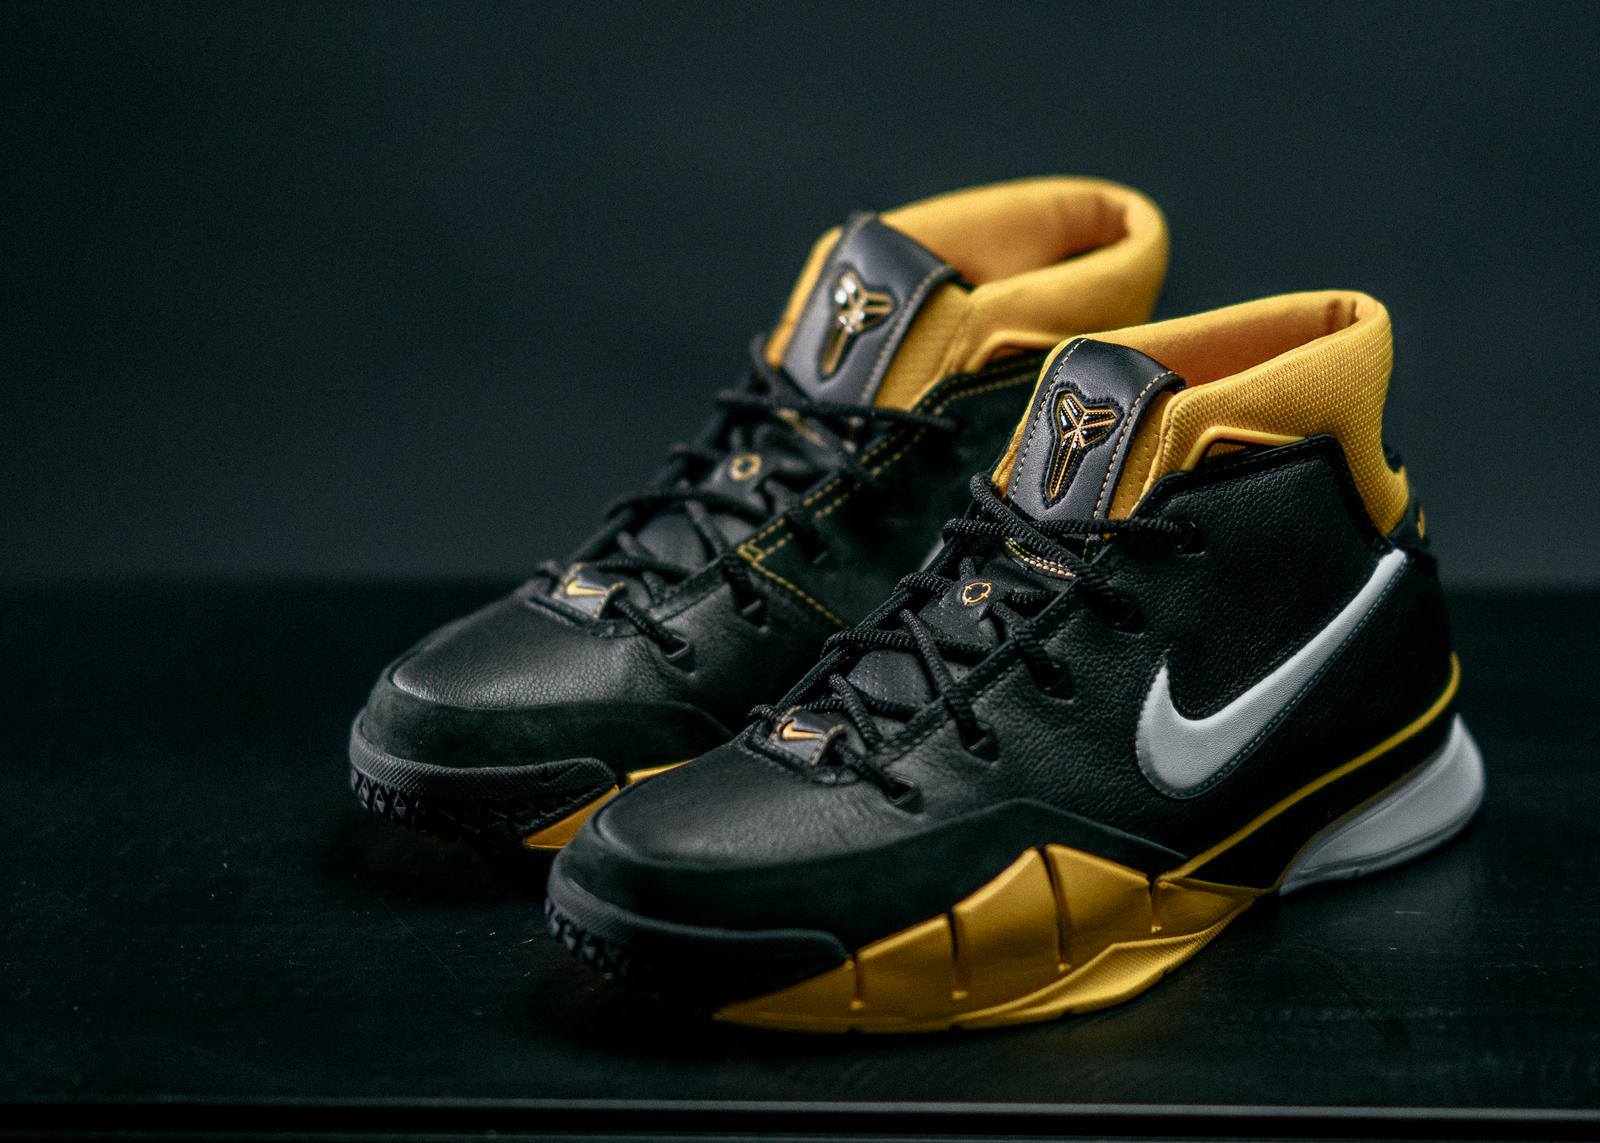 wholesale dealer e1eee ed906 Kobe Bryant Continues to Impact Basketball Footwear 3